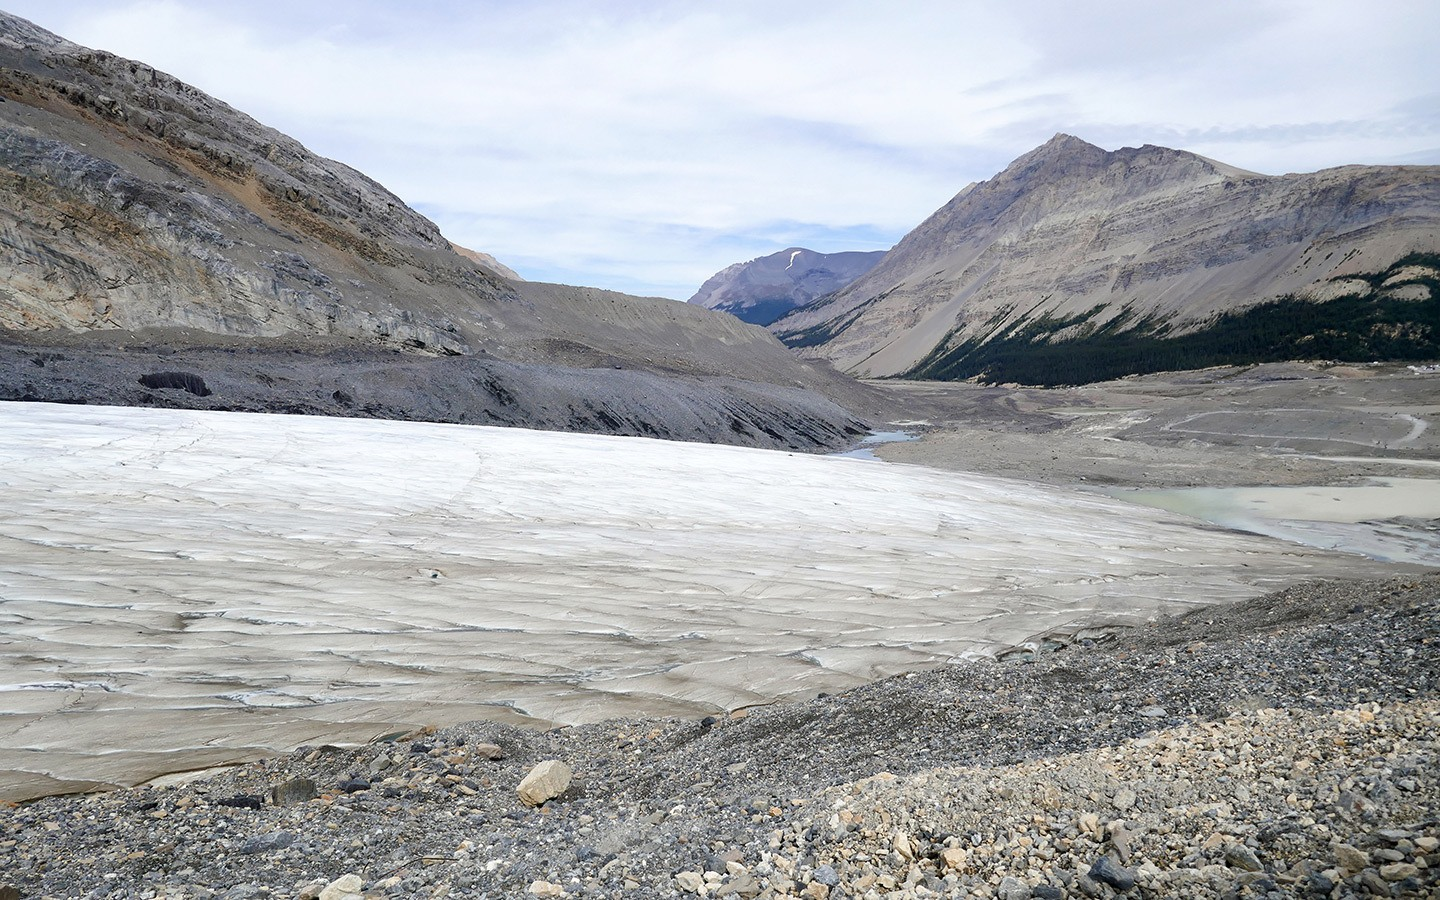 The foot of the Athabasca Glacier